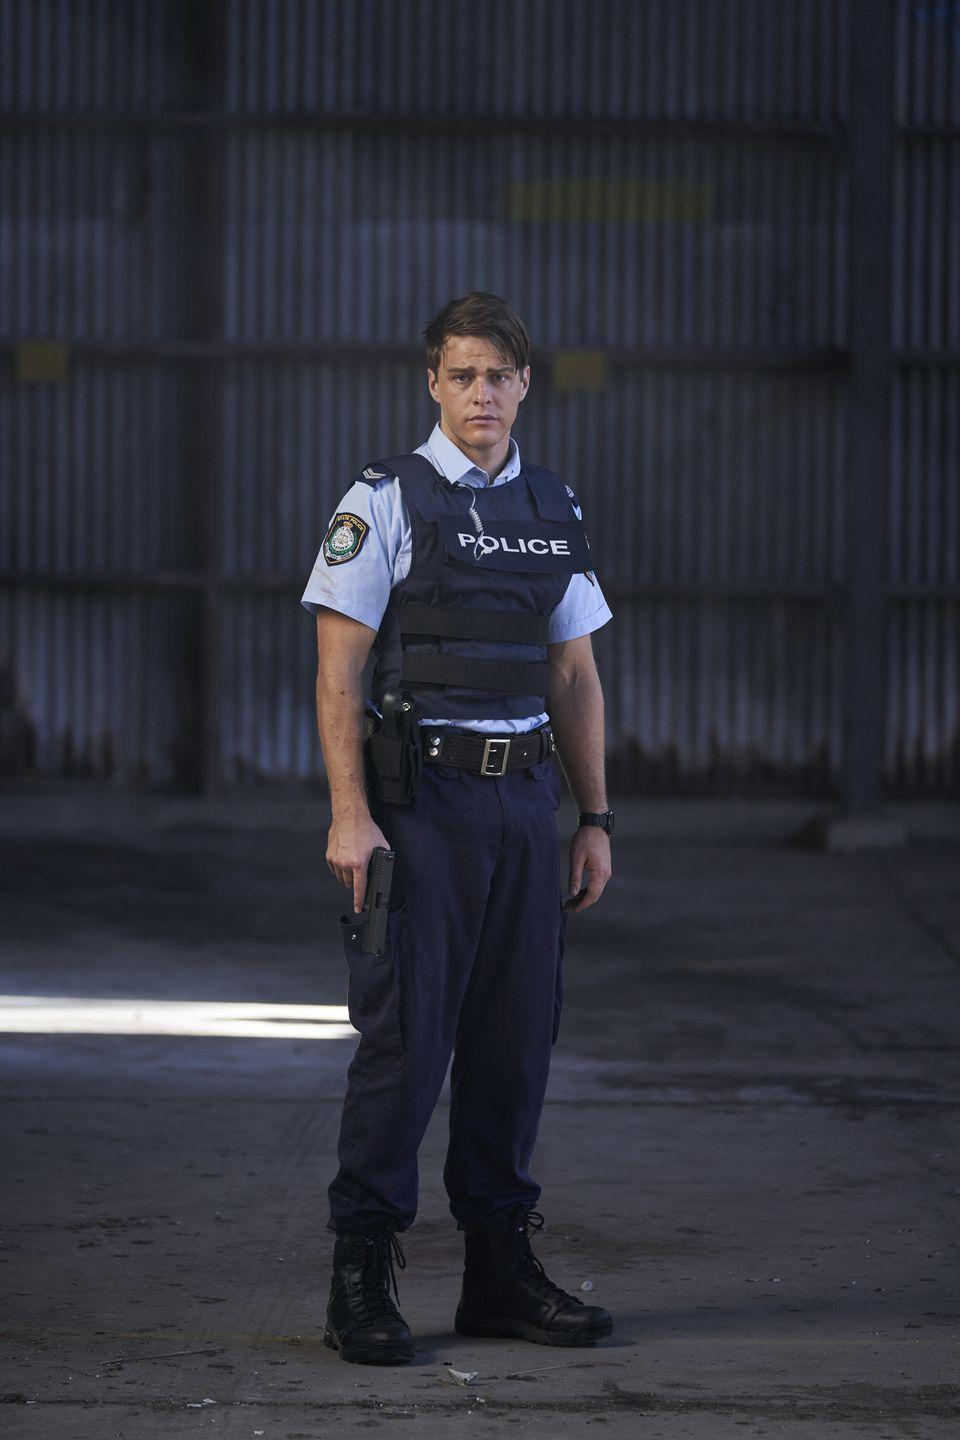 <p>Colby joined the Bay in early 2018 when he arrived as the town's new police officer. Many of his storylines centred around his desire to do the right thing in the force, which was often threatened by his dark past as part of the River Boys.</p><p>Colby was recently sentenced to 25 years in prison for the murder of his abusive stepfather Ross Nixon.</p>